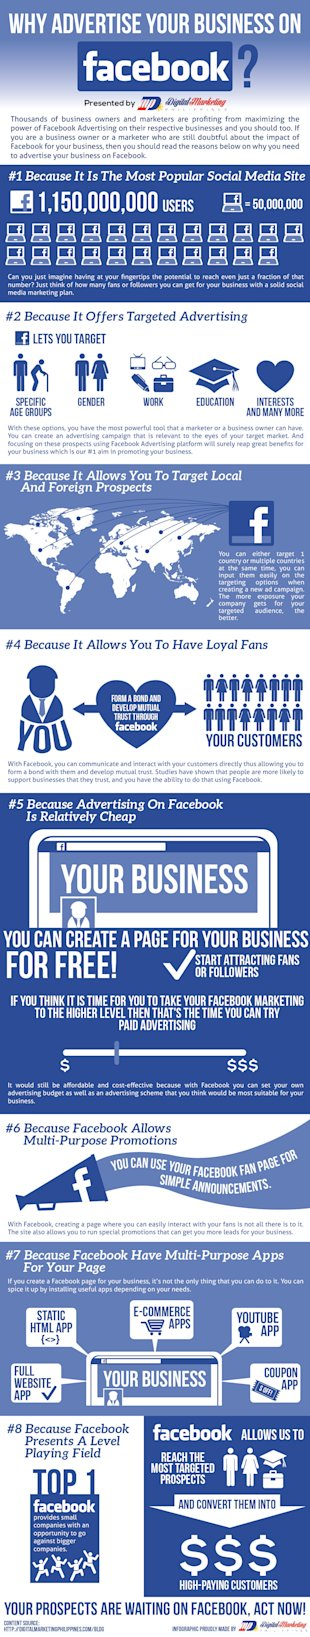 Why Advertise Your Business On Facebook? (Infographic) image Why Advertise Your Business On Facebook